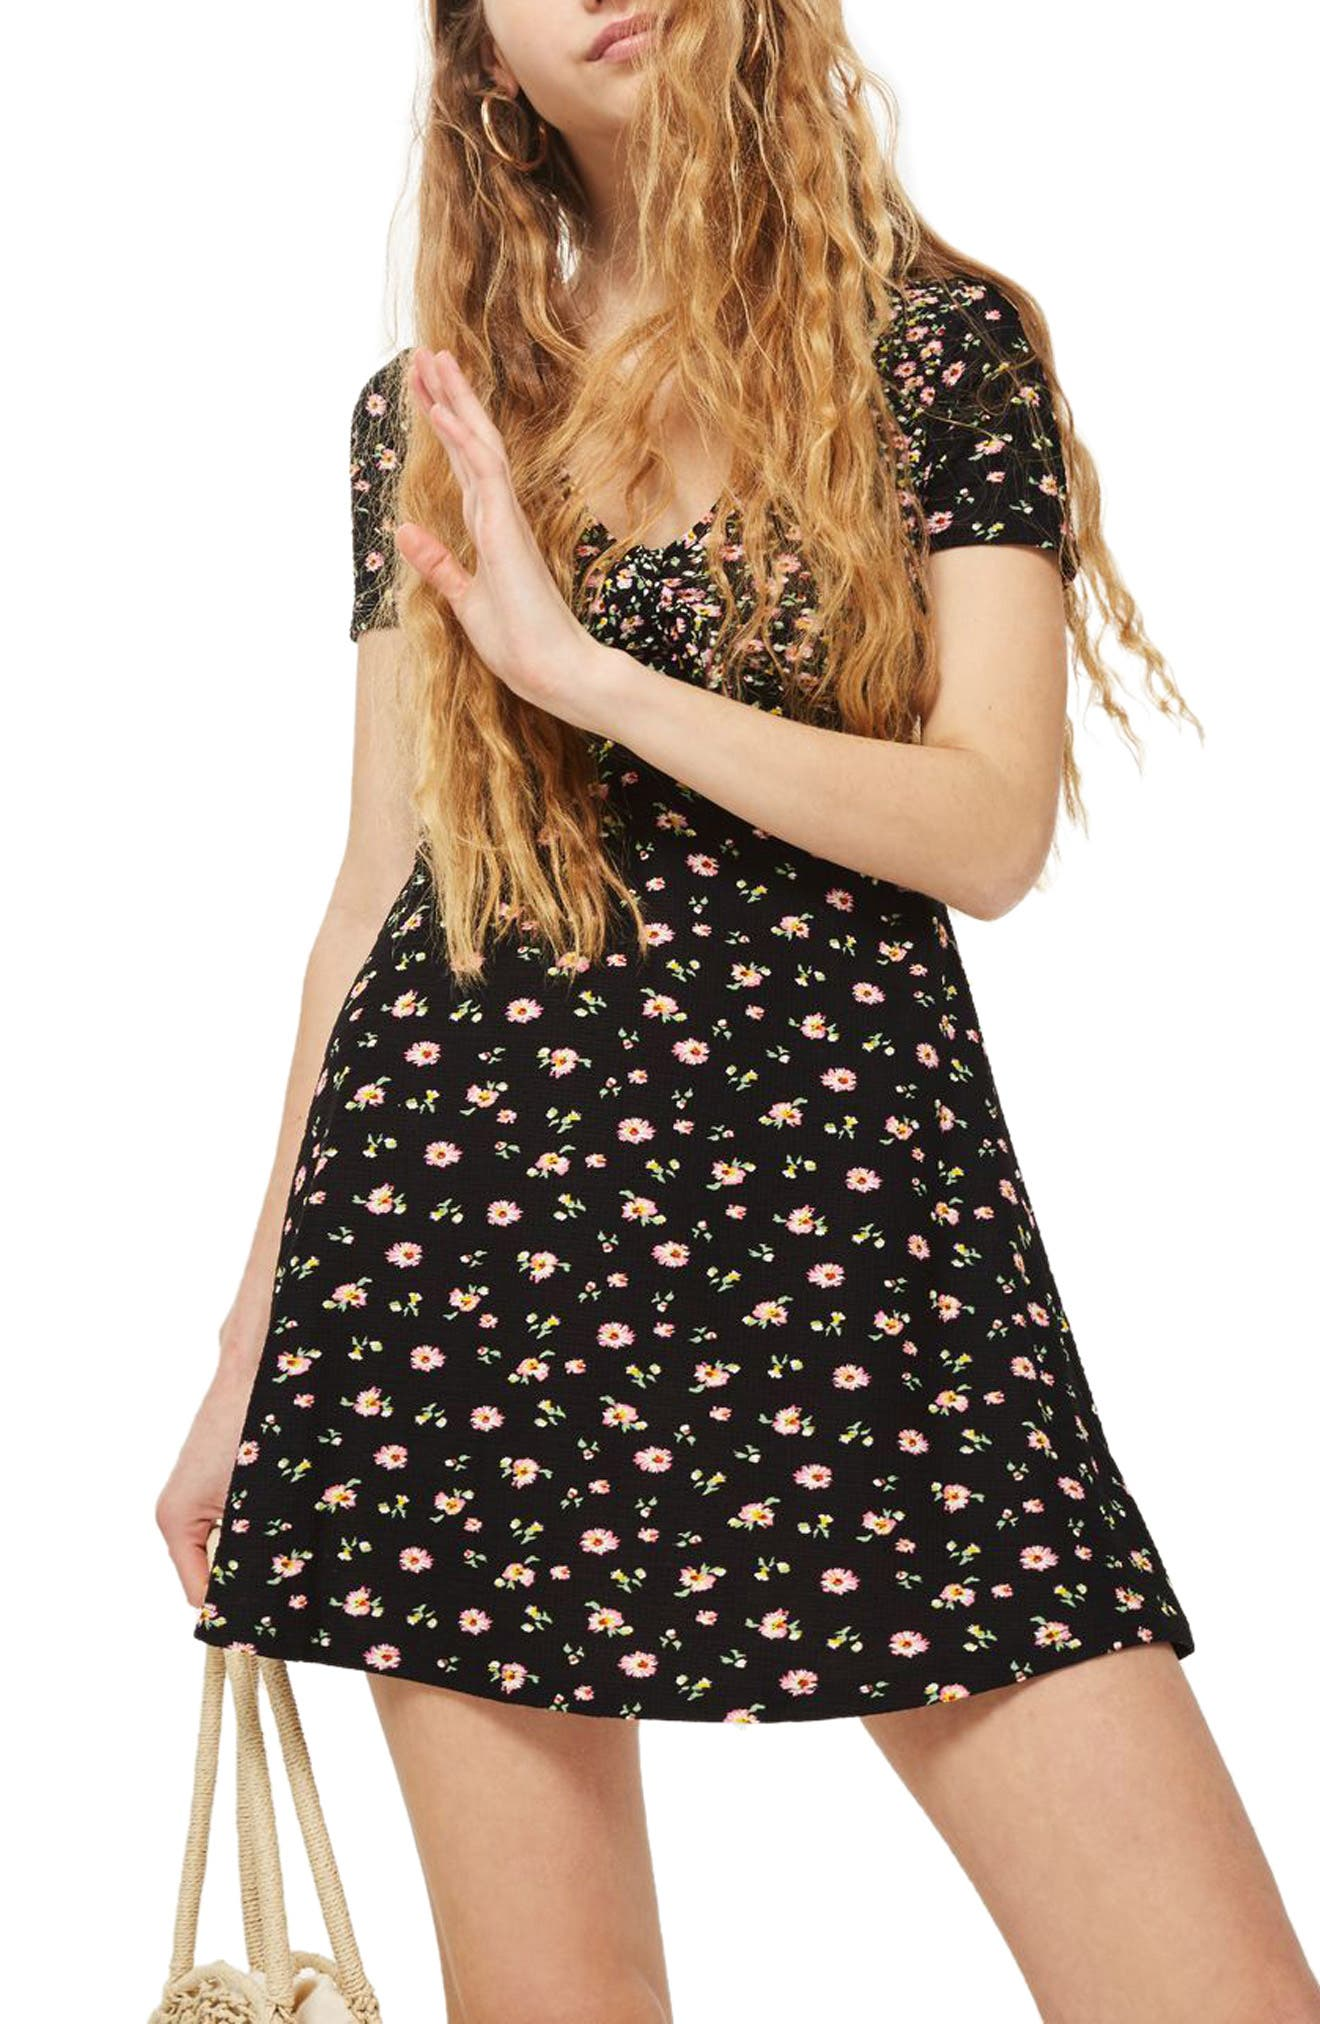 Mixed Floral Tea Dress,                             Alternate thumbnail 3, color,                             Black